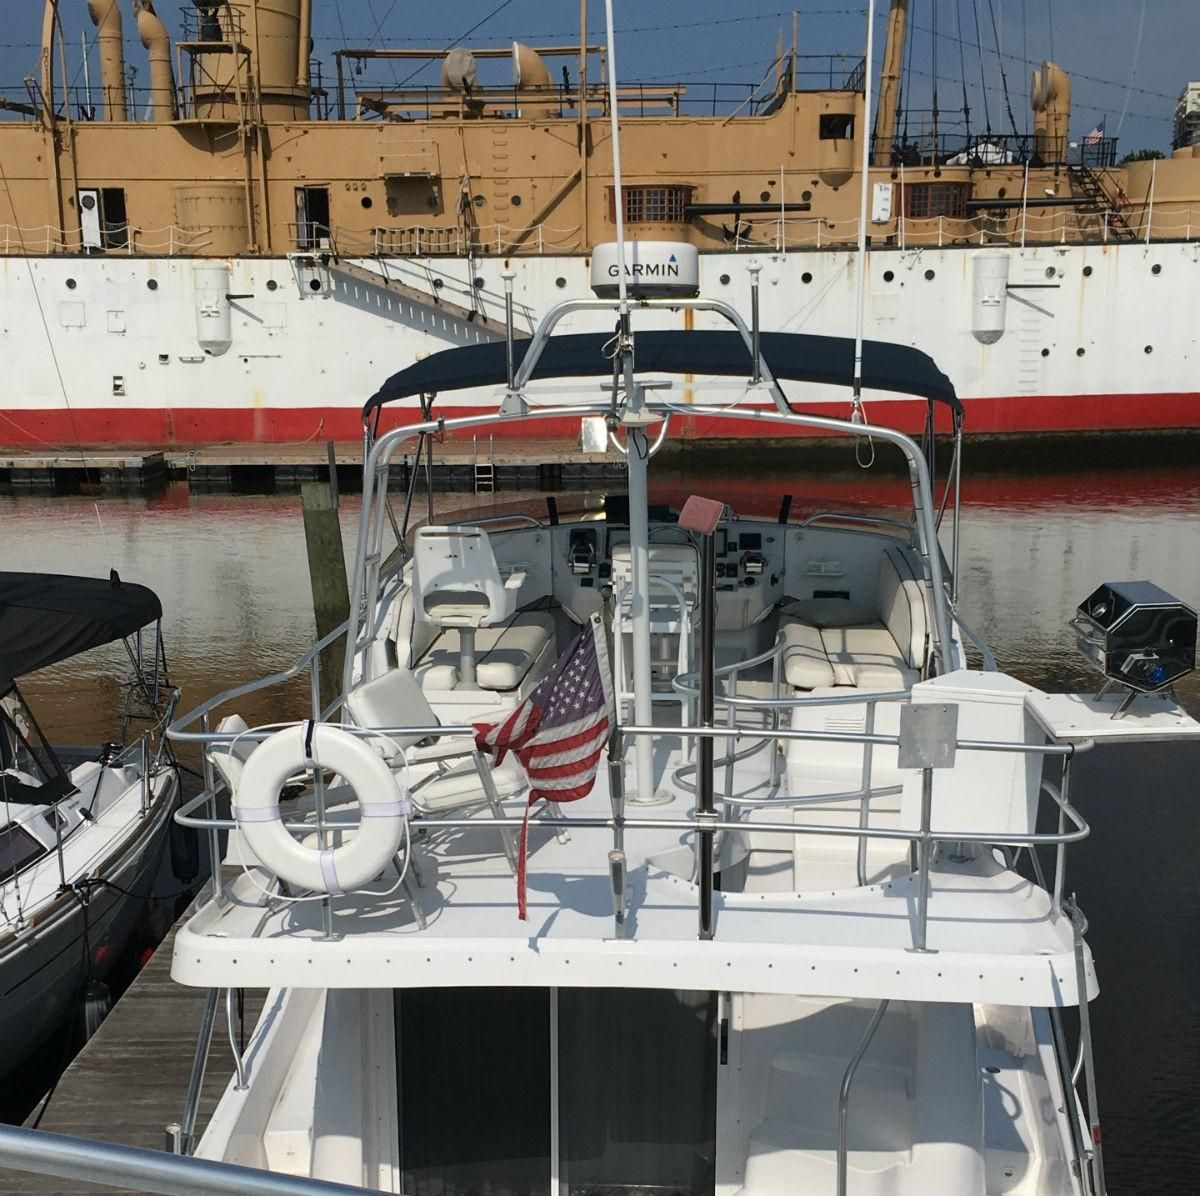 1999 Used Mainship 390 Trawler Boat For Sale - $92,500